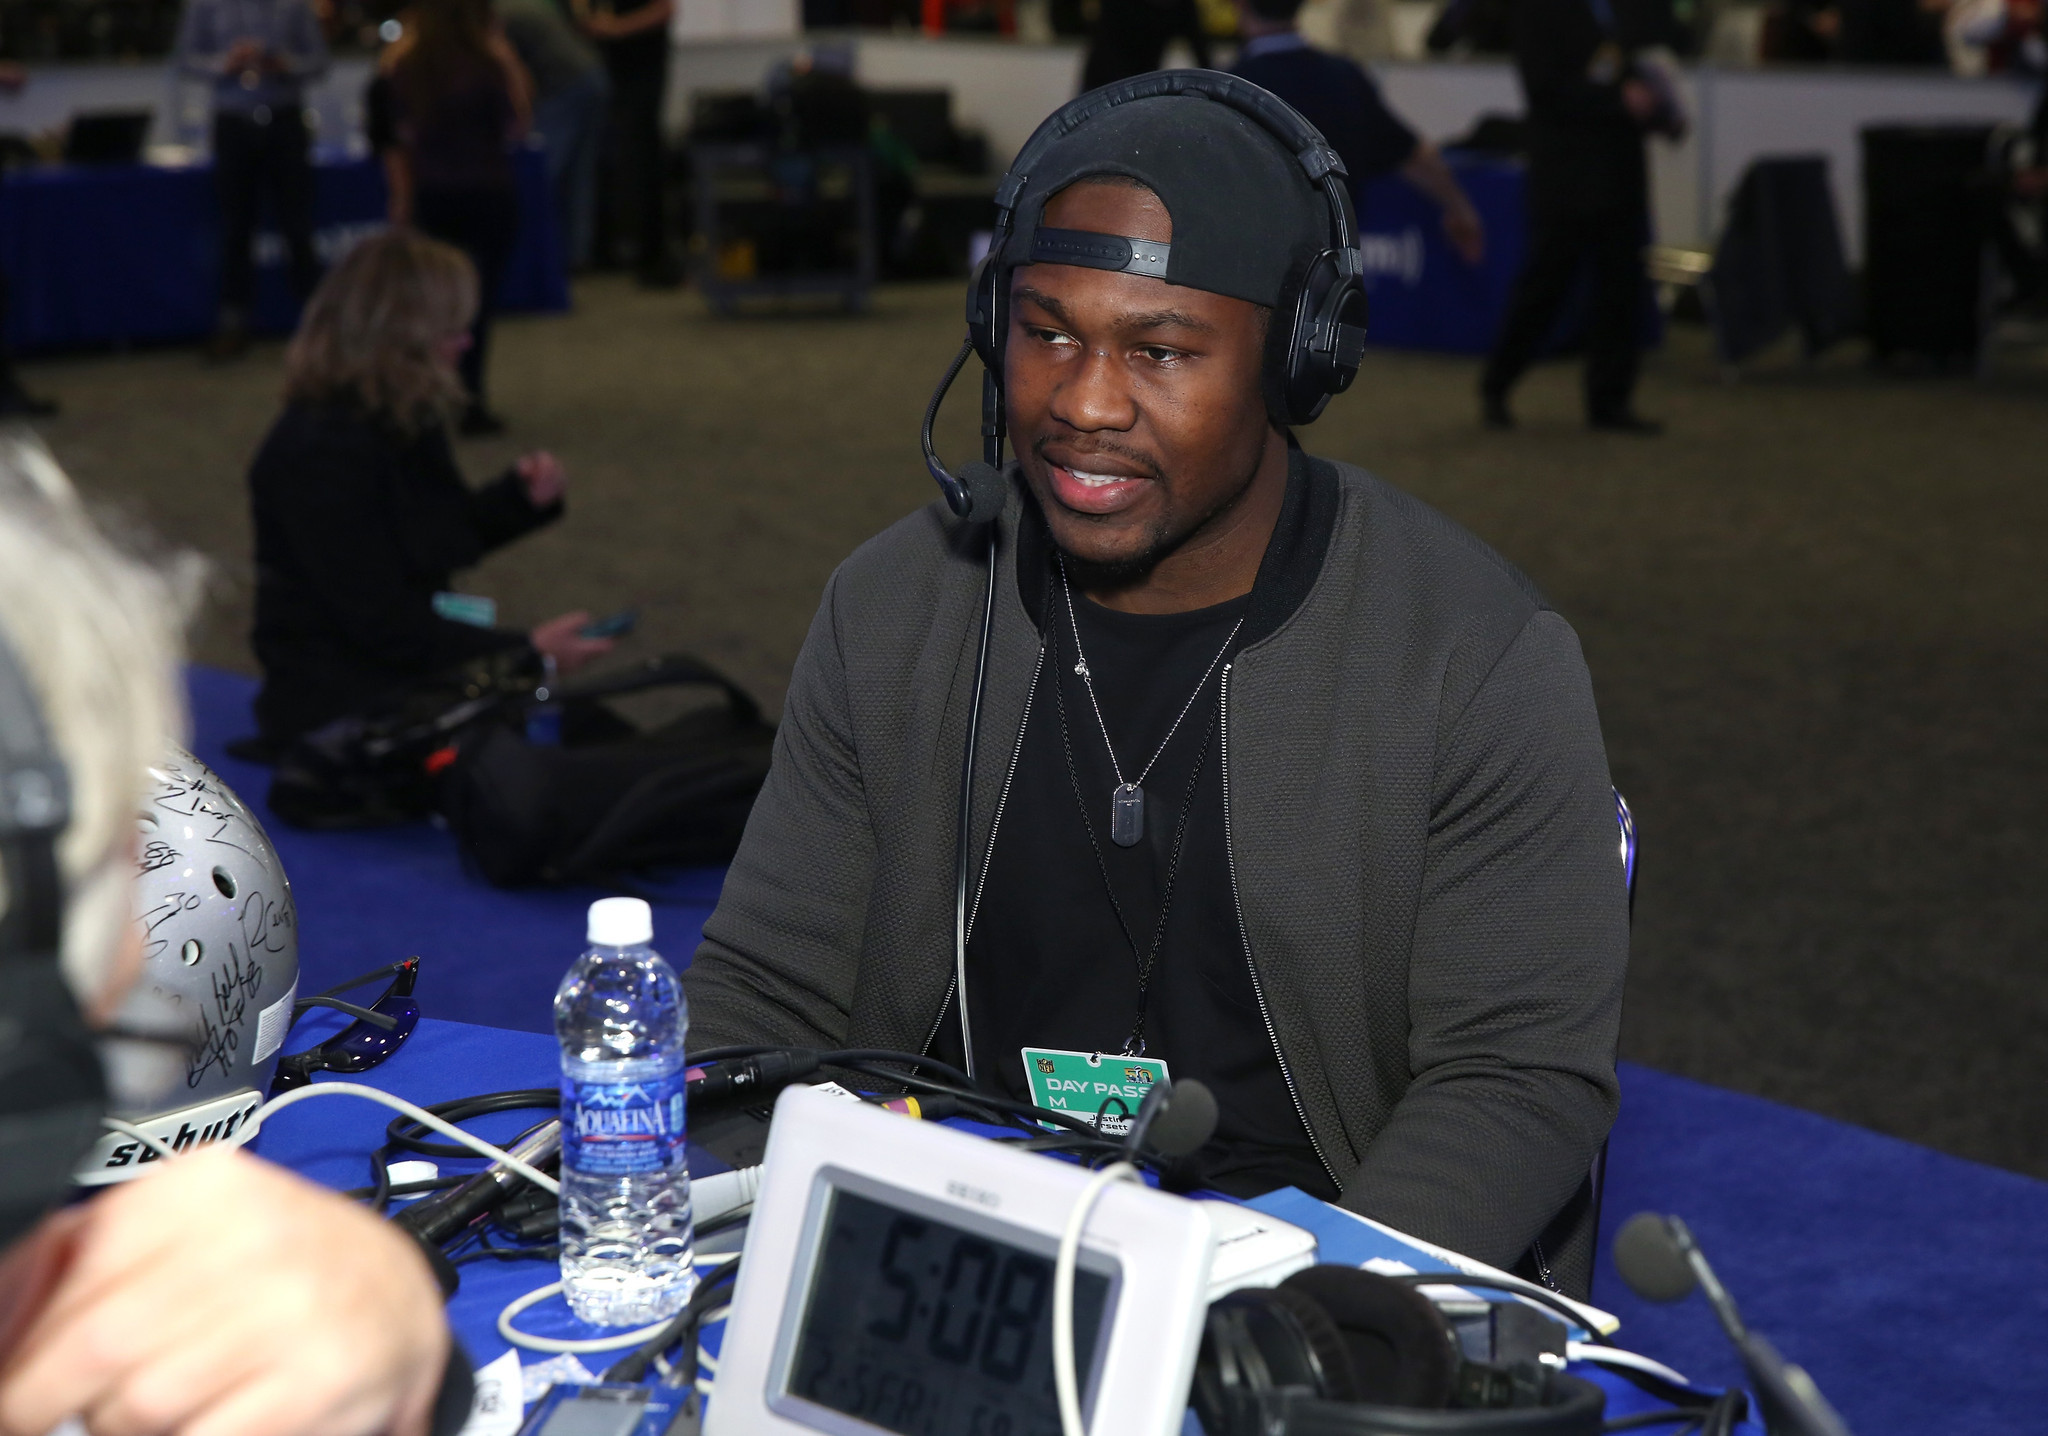 Bal-justin-forsett-torrey-smith-headed-to-flint-mich-to-help-with-water-crisis-20160209